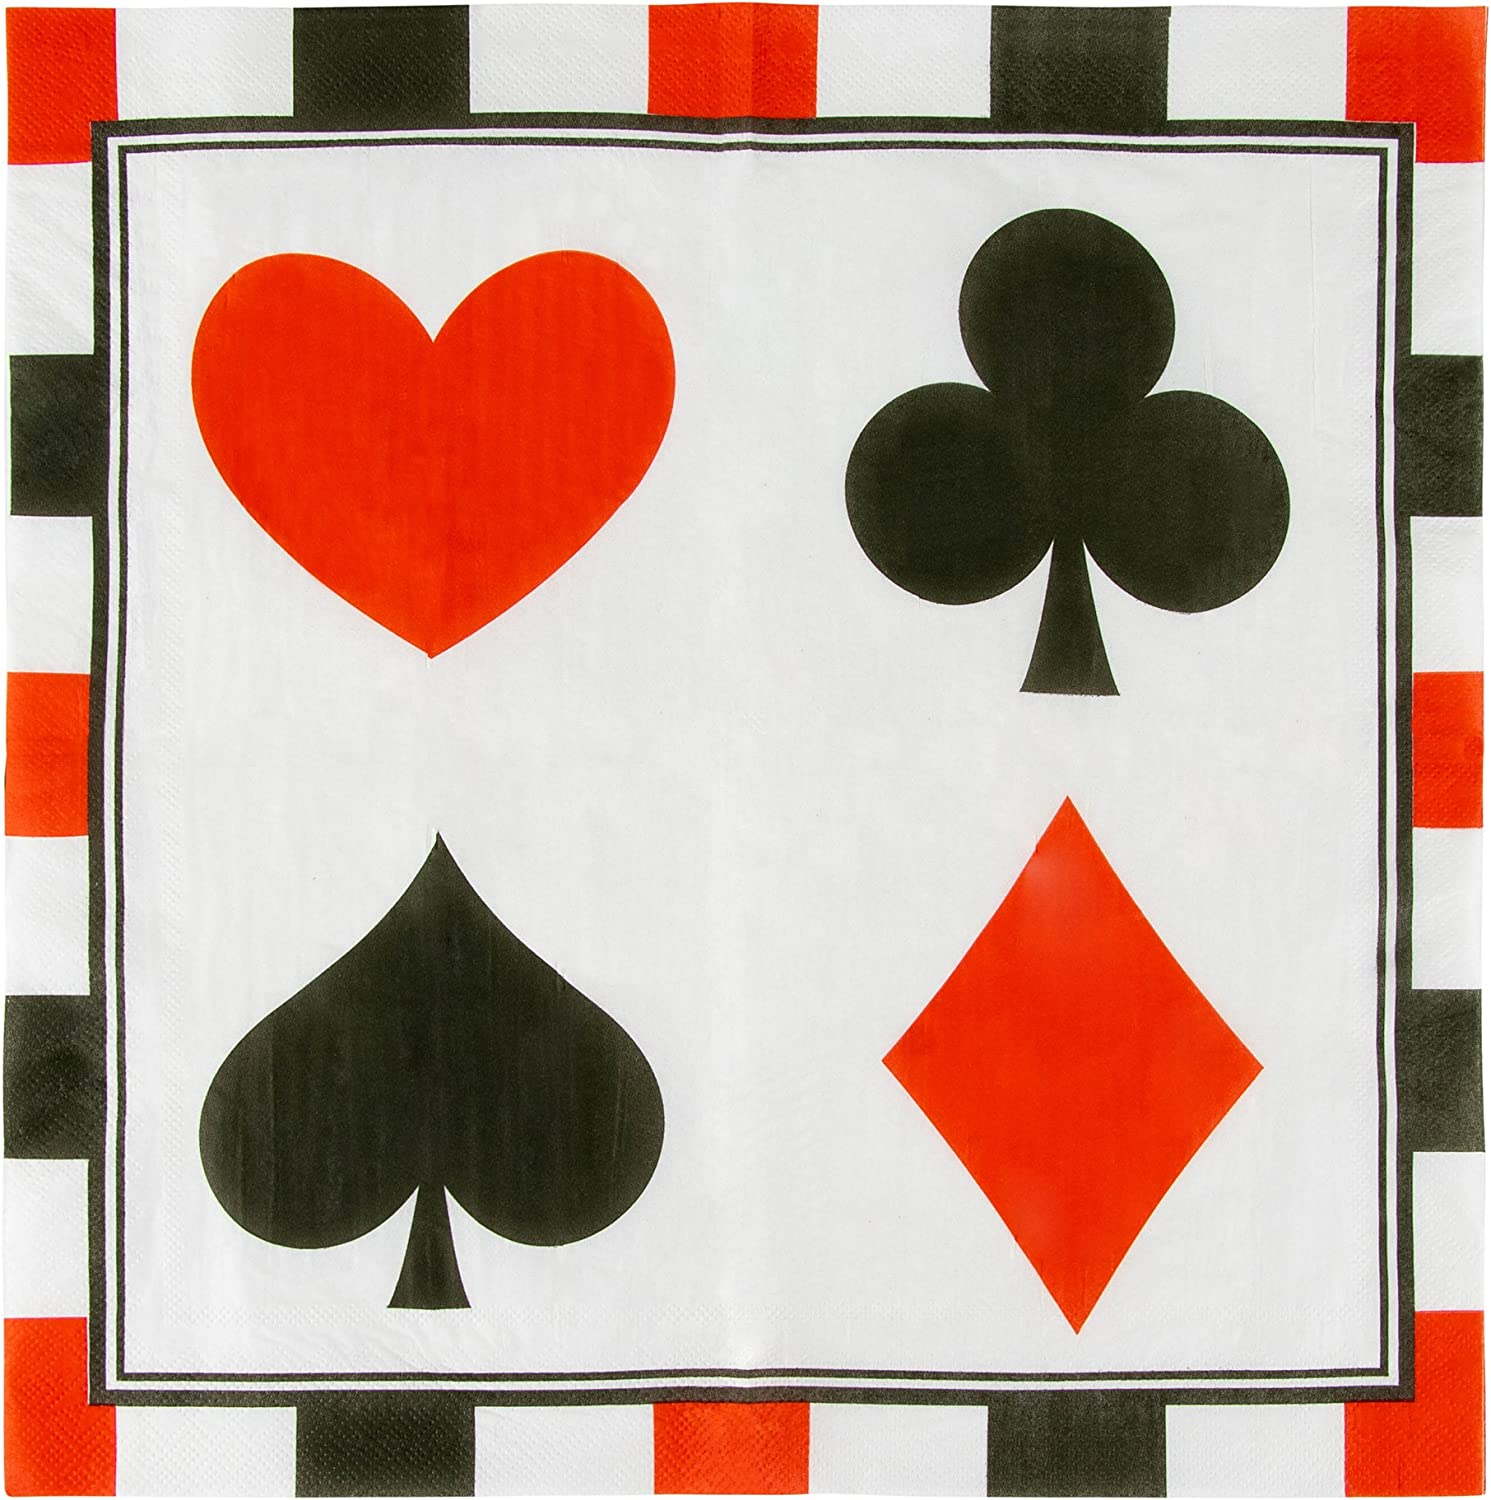 Paper Napkins in Poker Design for Casino Party Supplies (6.5 x 6.5 in, 150 Pack)